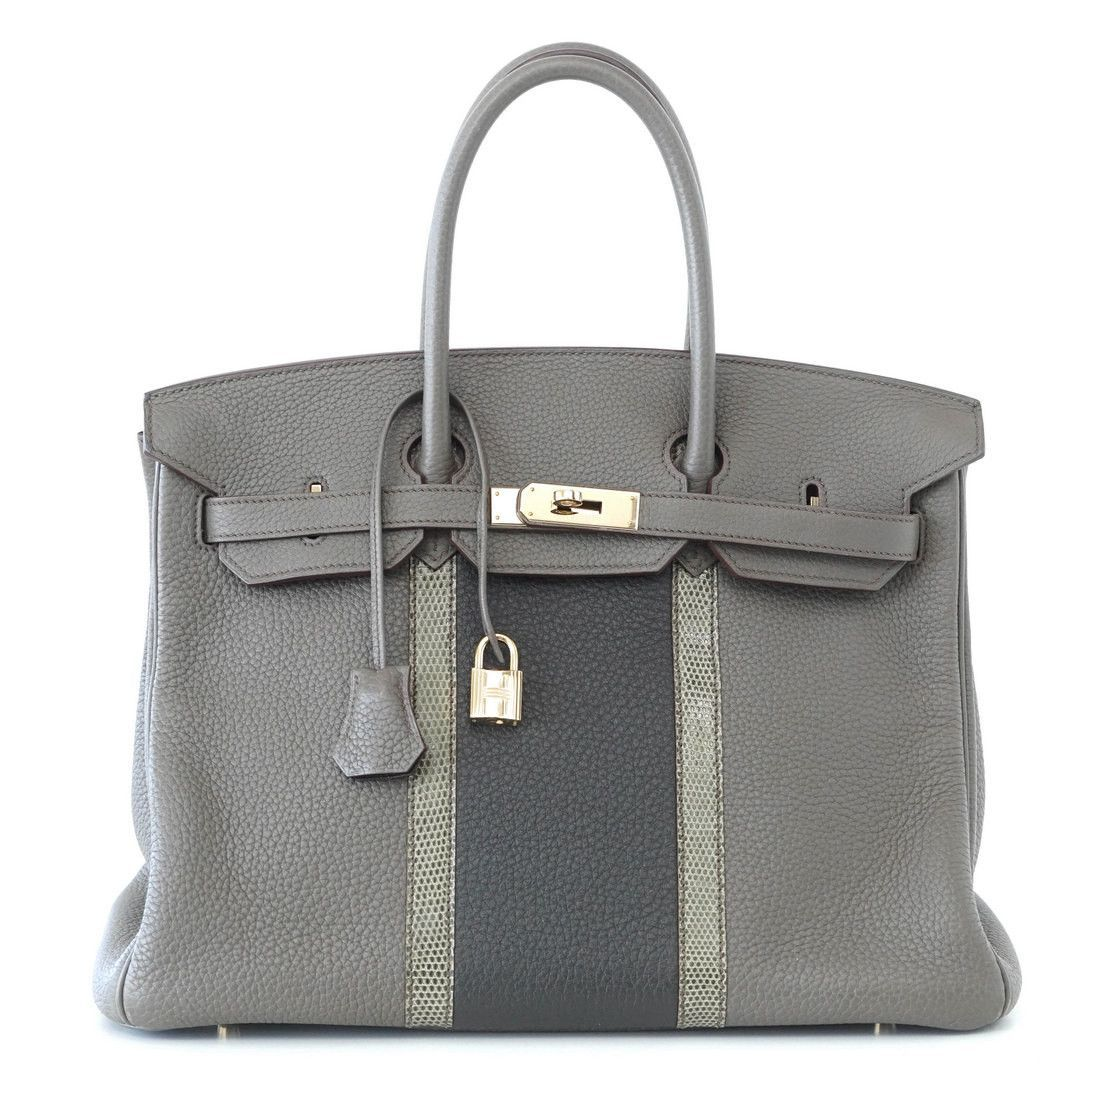 ade488ed31d9 Guaranteed authentic coveted Limited Edition HERMES Club Birkin in Grays… Hermes  Birkin 35 Bag ...